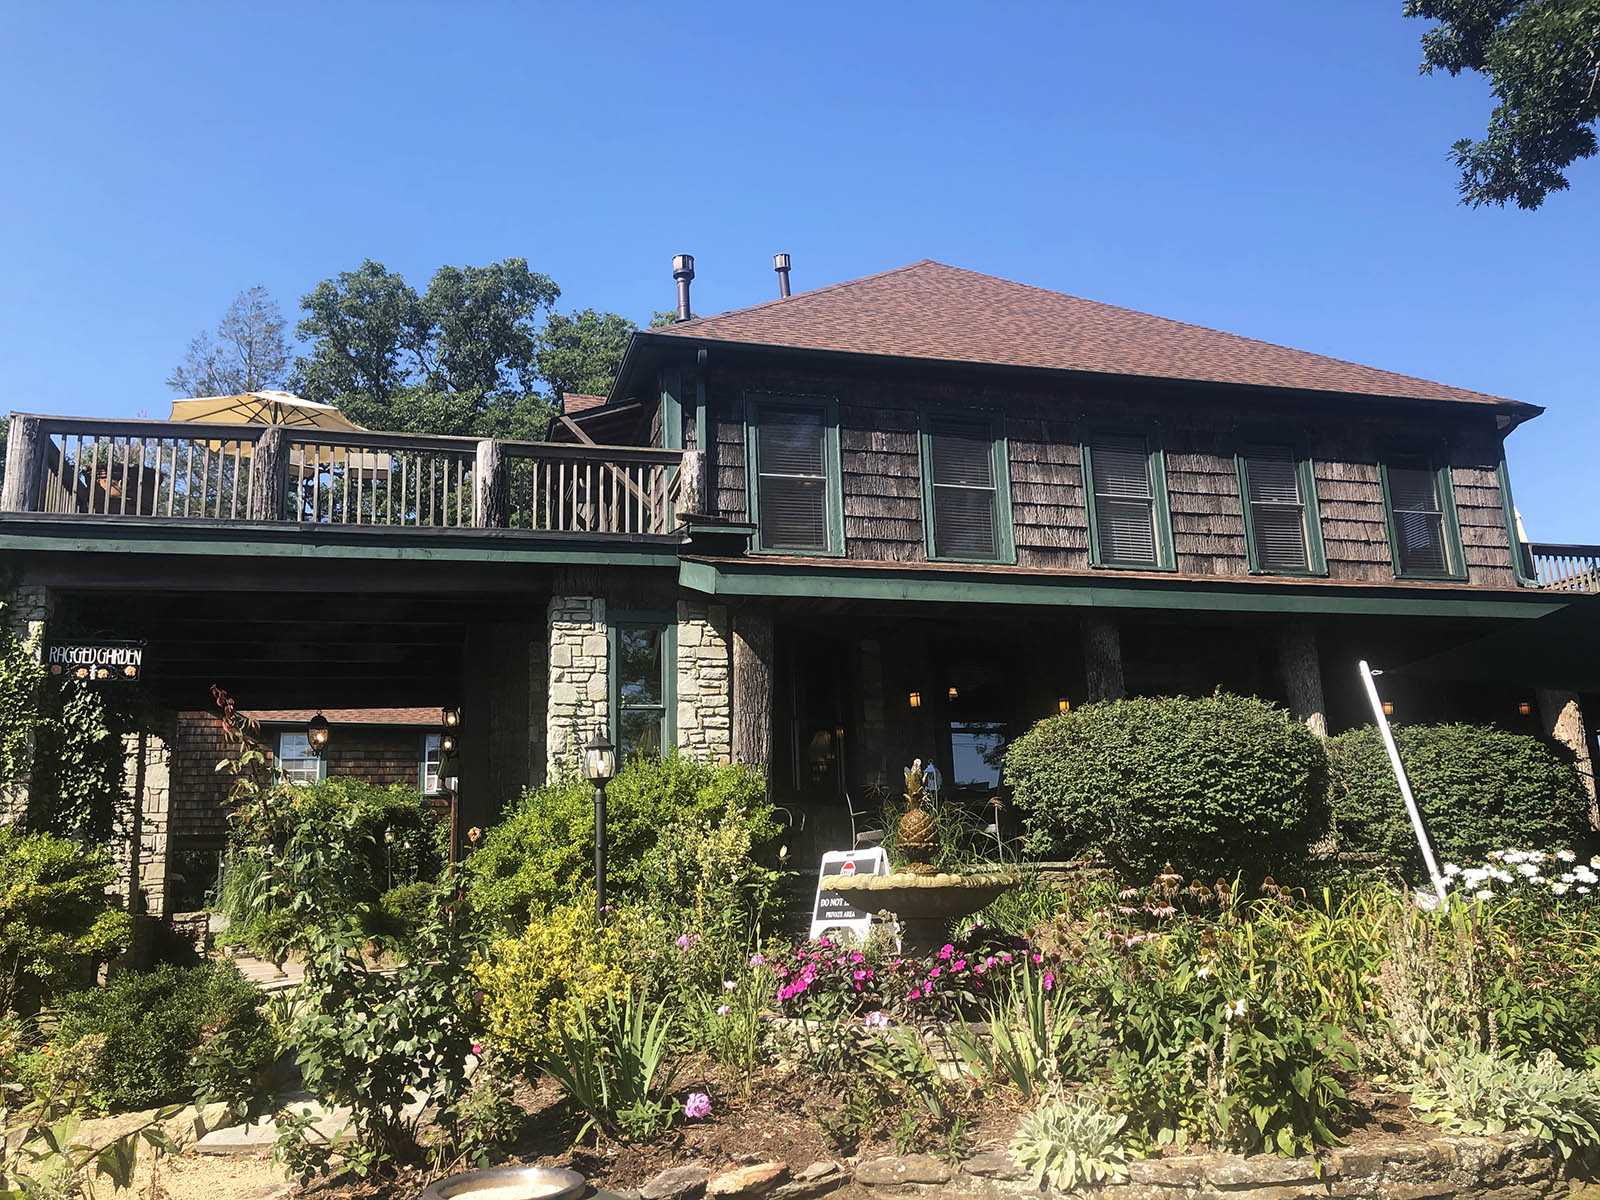 The Inn at Ragged Gardens Blowing Rock stay